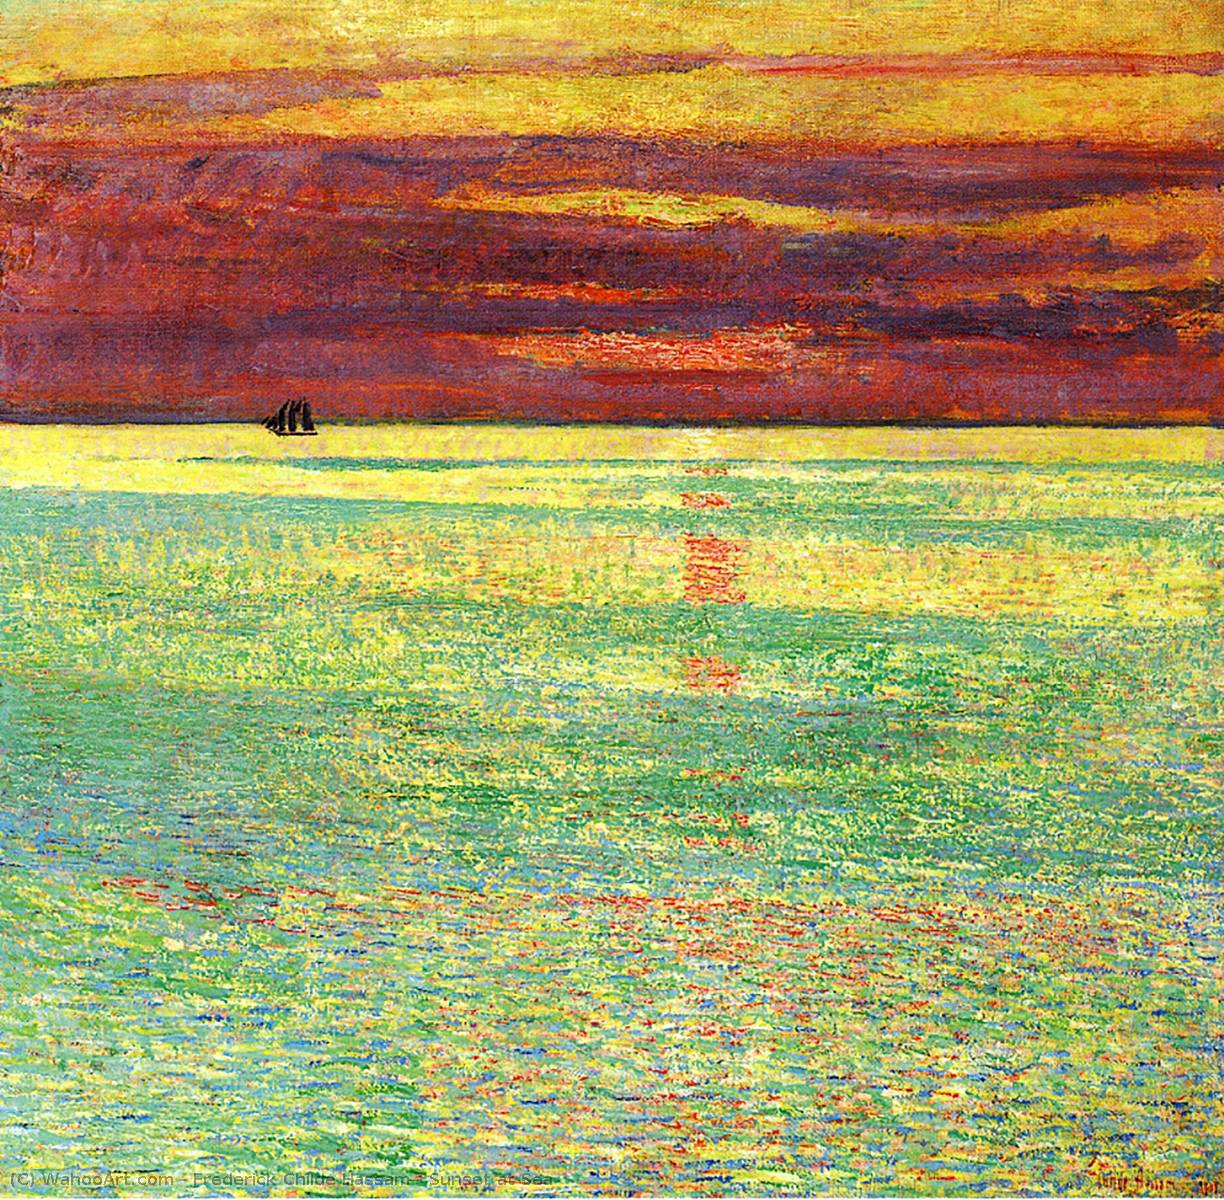 Order Reproductions | Sunset at Sea, 1911 by Frederick Childe Hassam (1859-1935, United States) | WahooArt.com